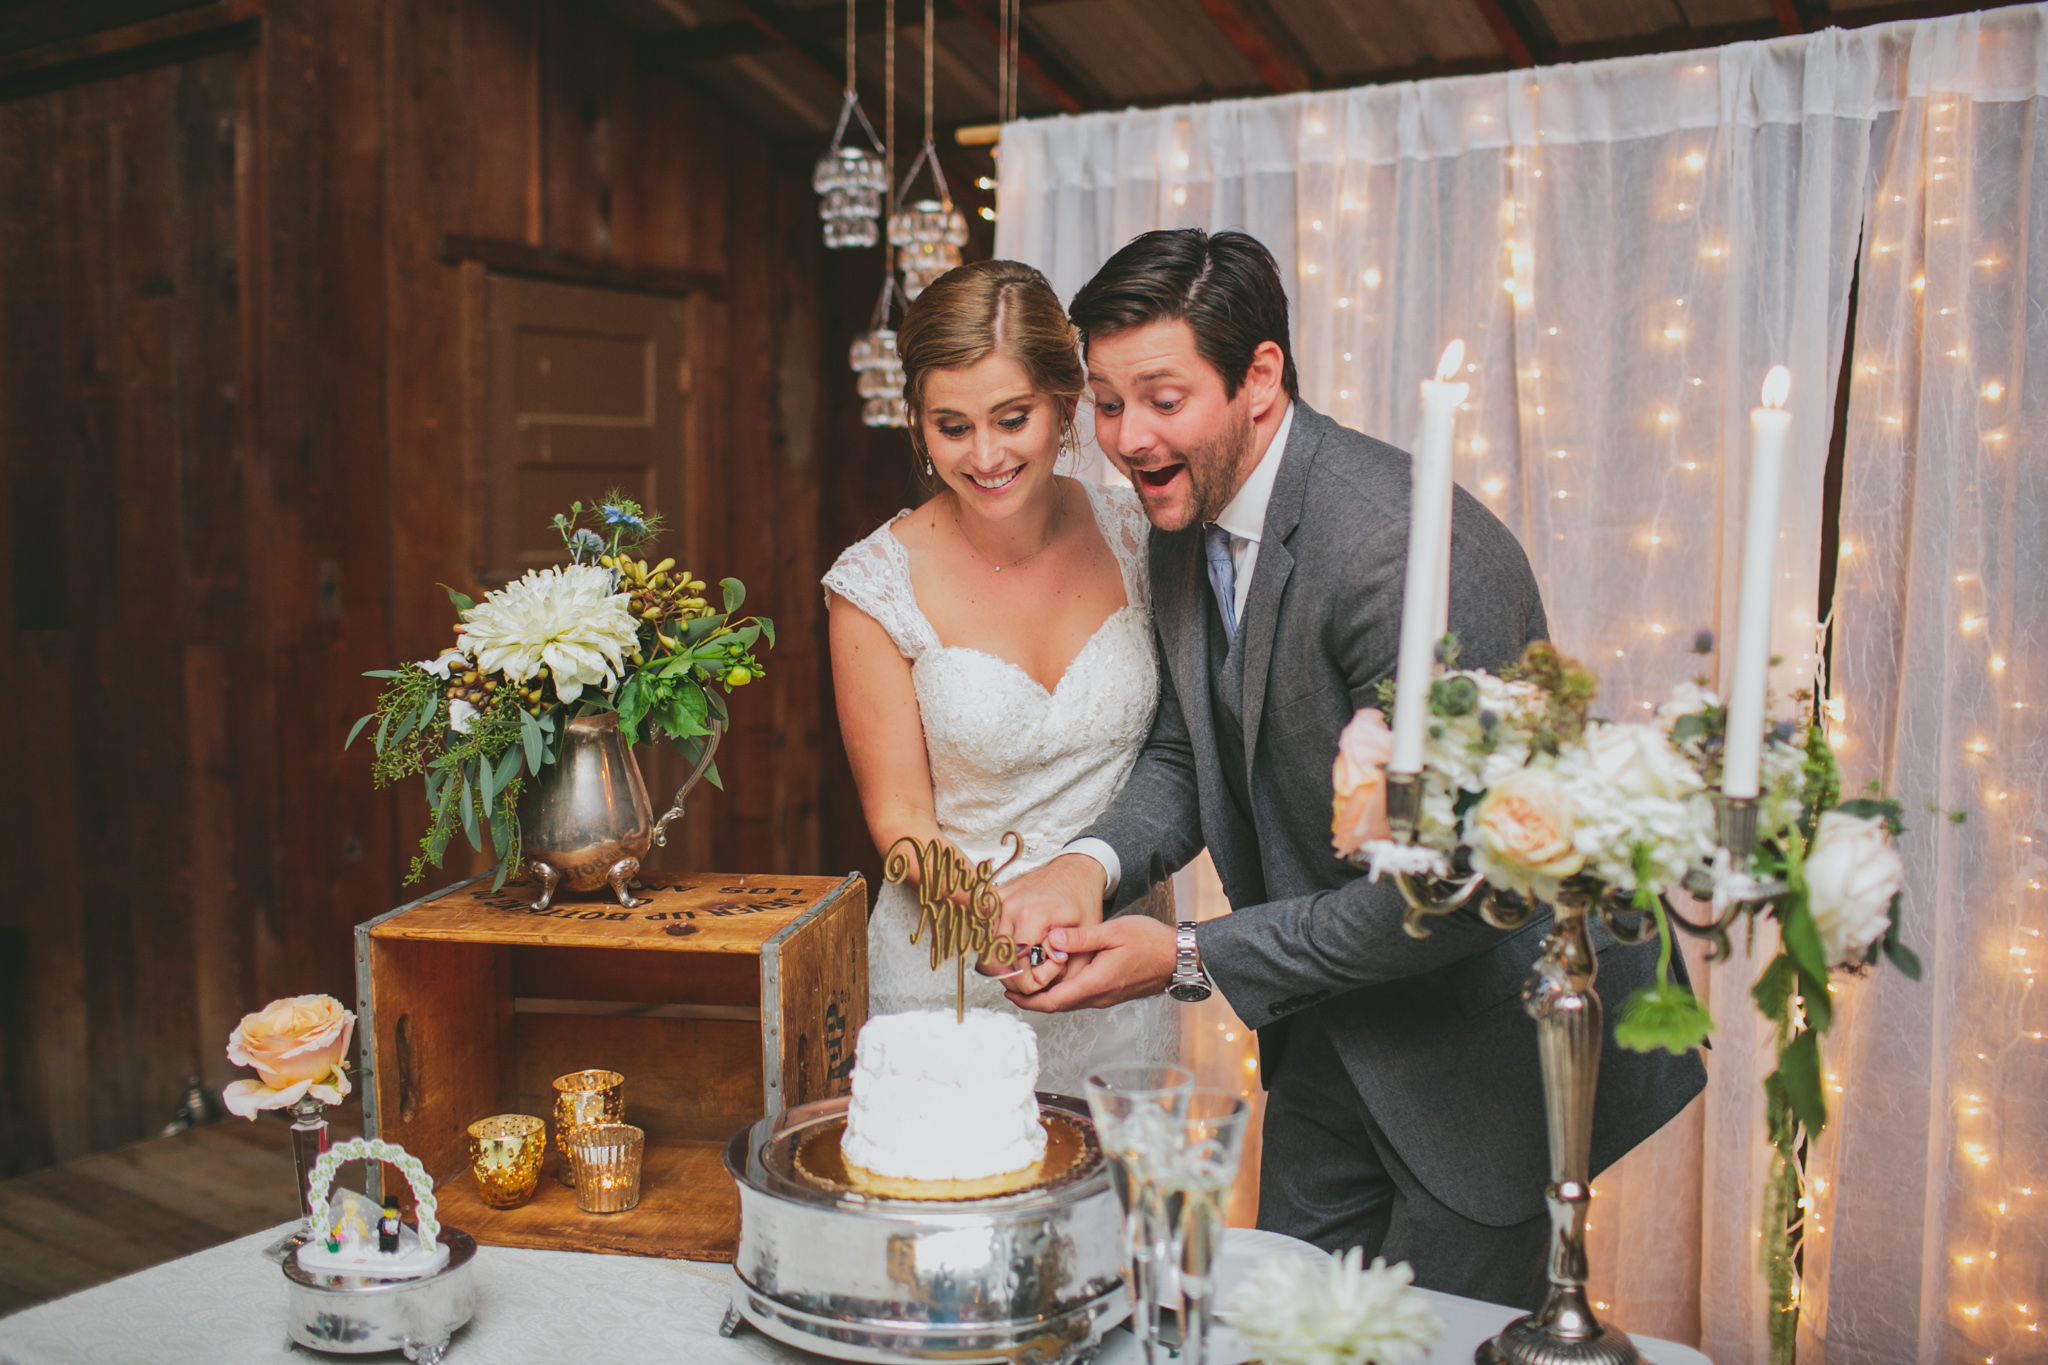 whitney+parker-WEB_BLOG-157